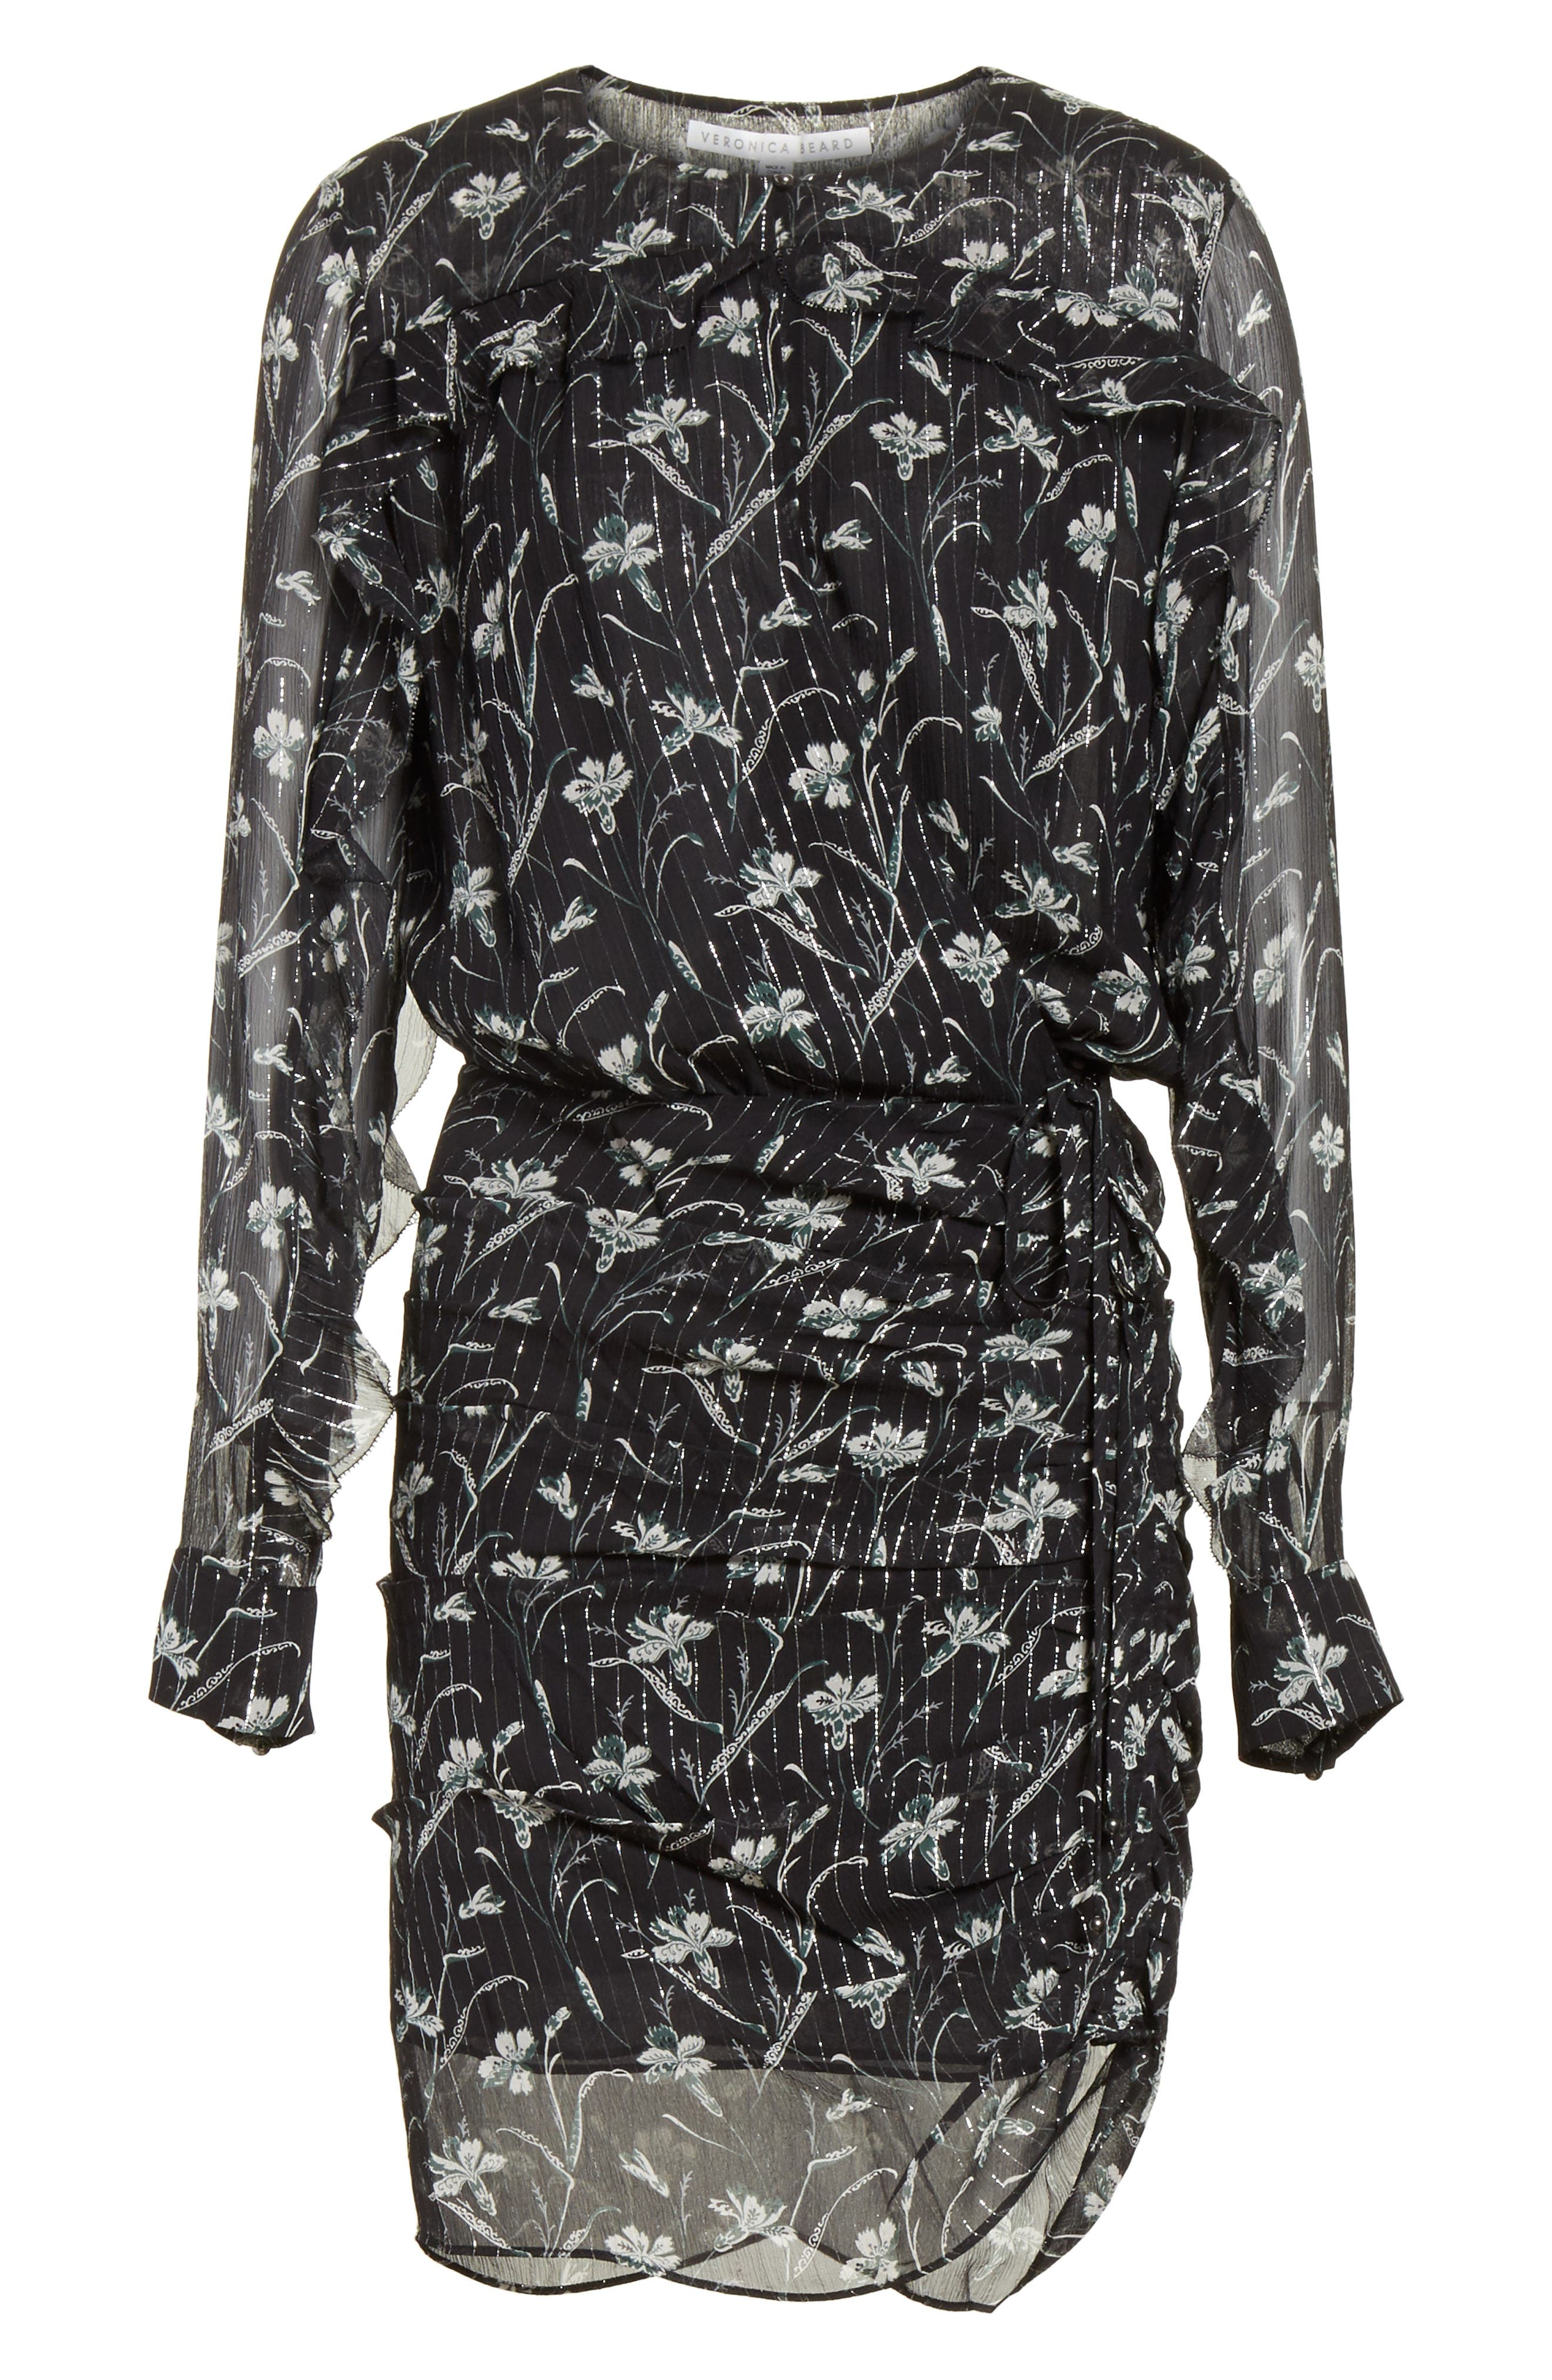 Fitzgerald Floral Print Metallic Chiffon Dress,                             Alternate thumbnail 6, color,                             301